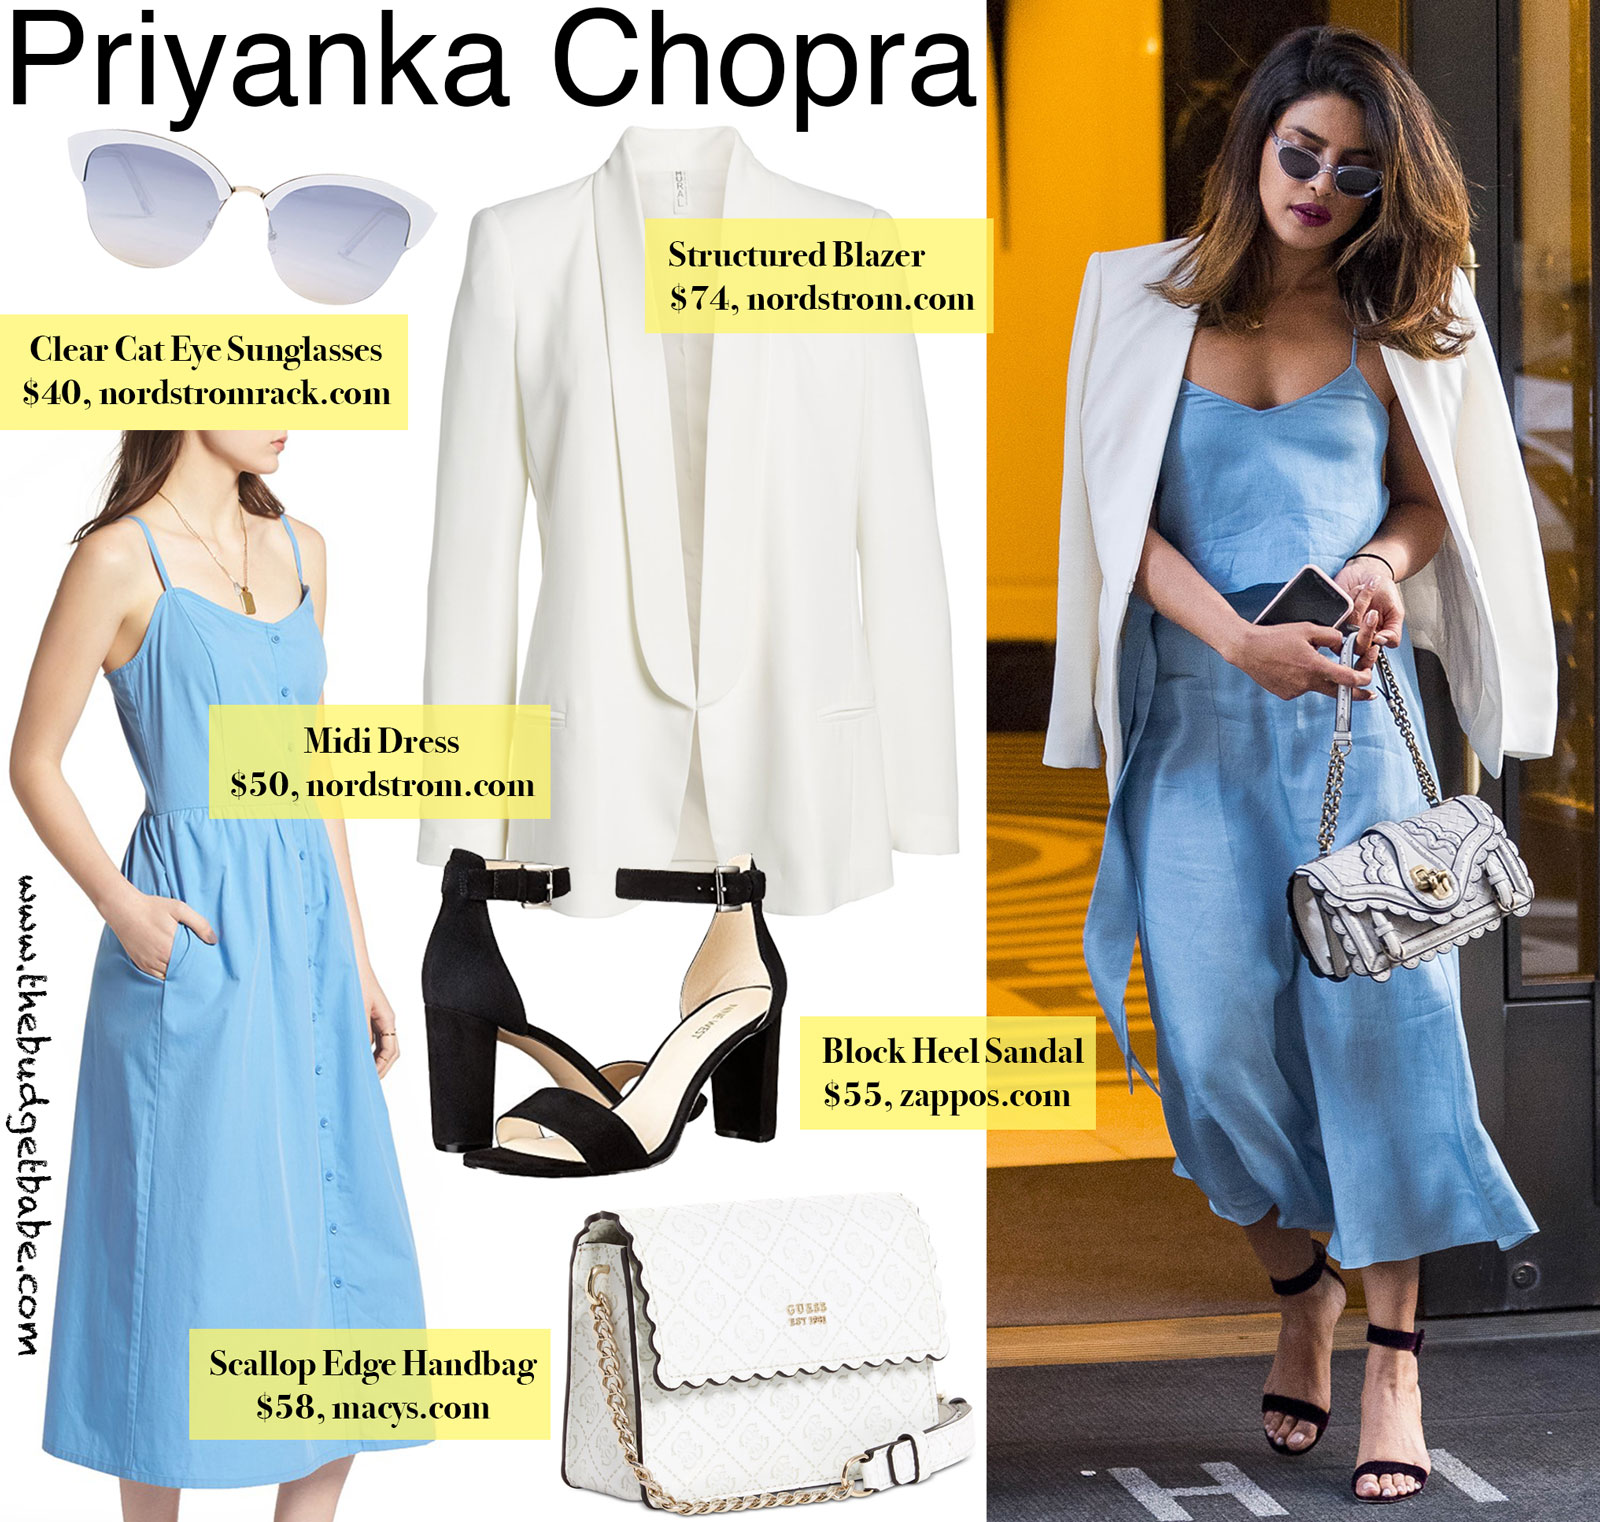 Priyanka Chopra Blue Dress and Scallop Handbag Look for Less